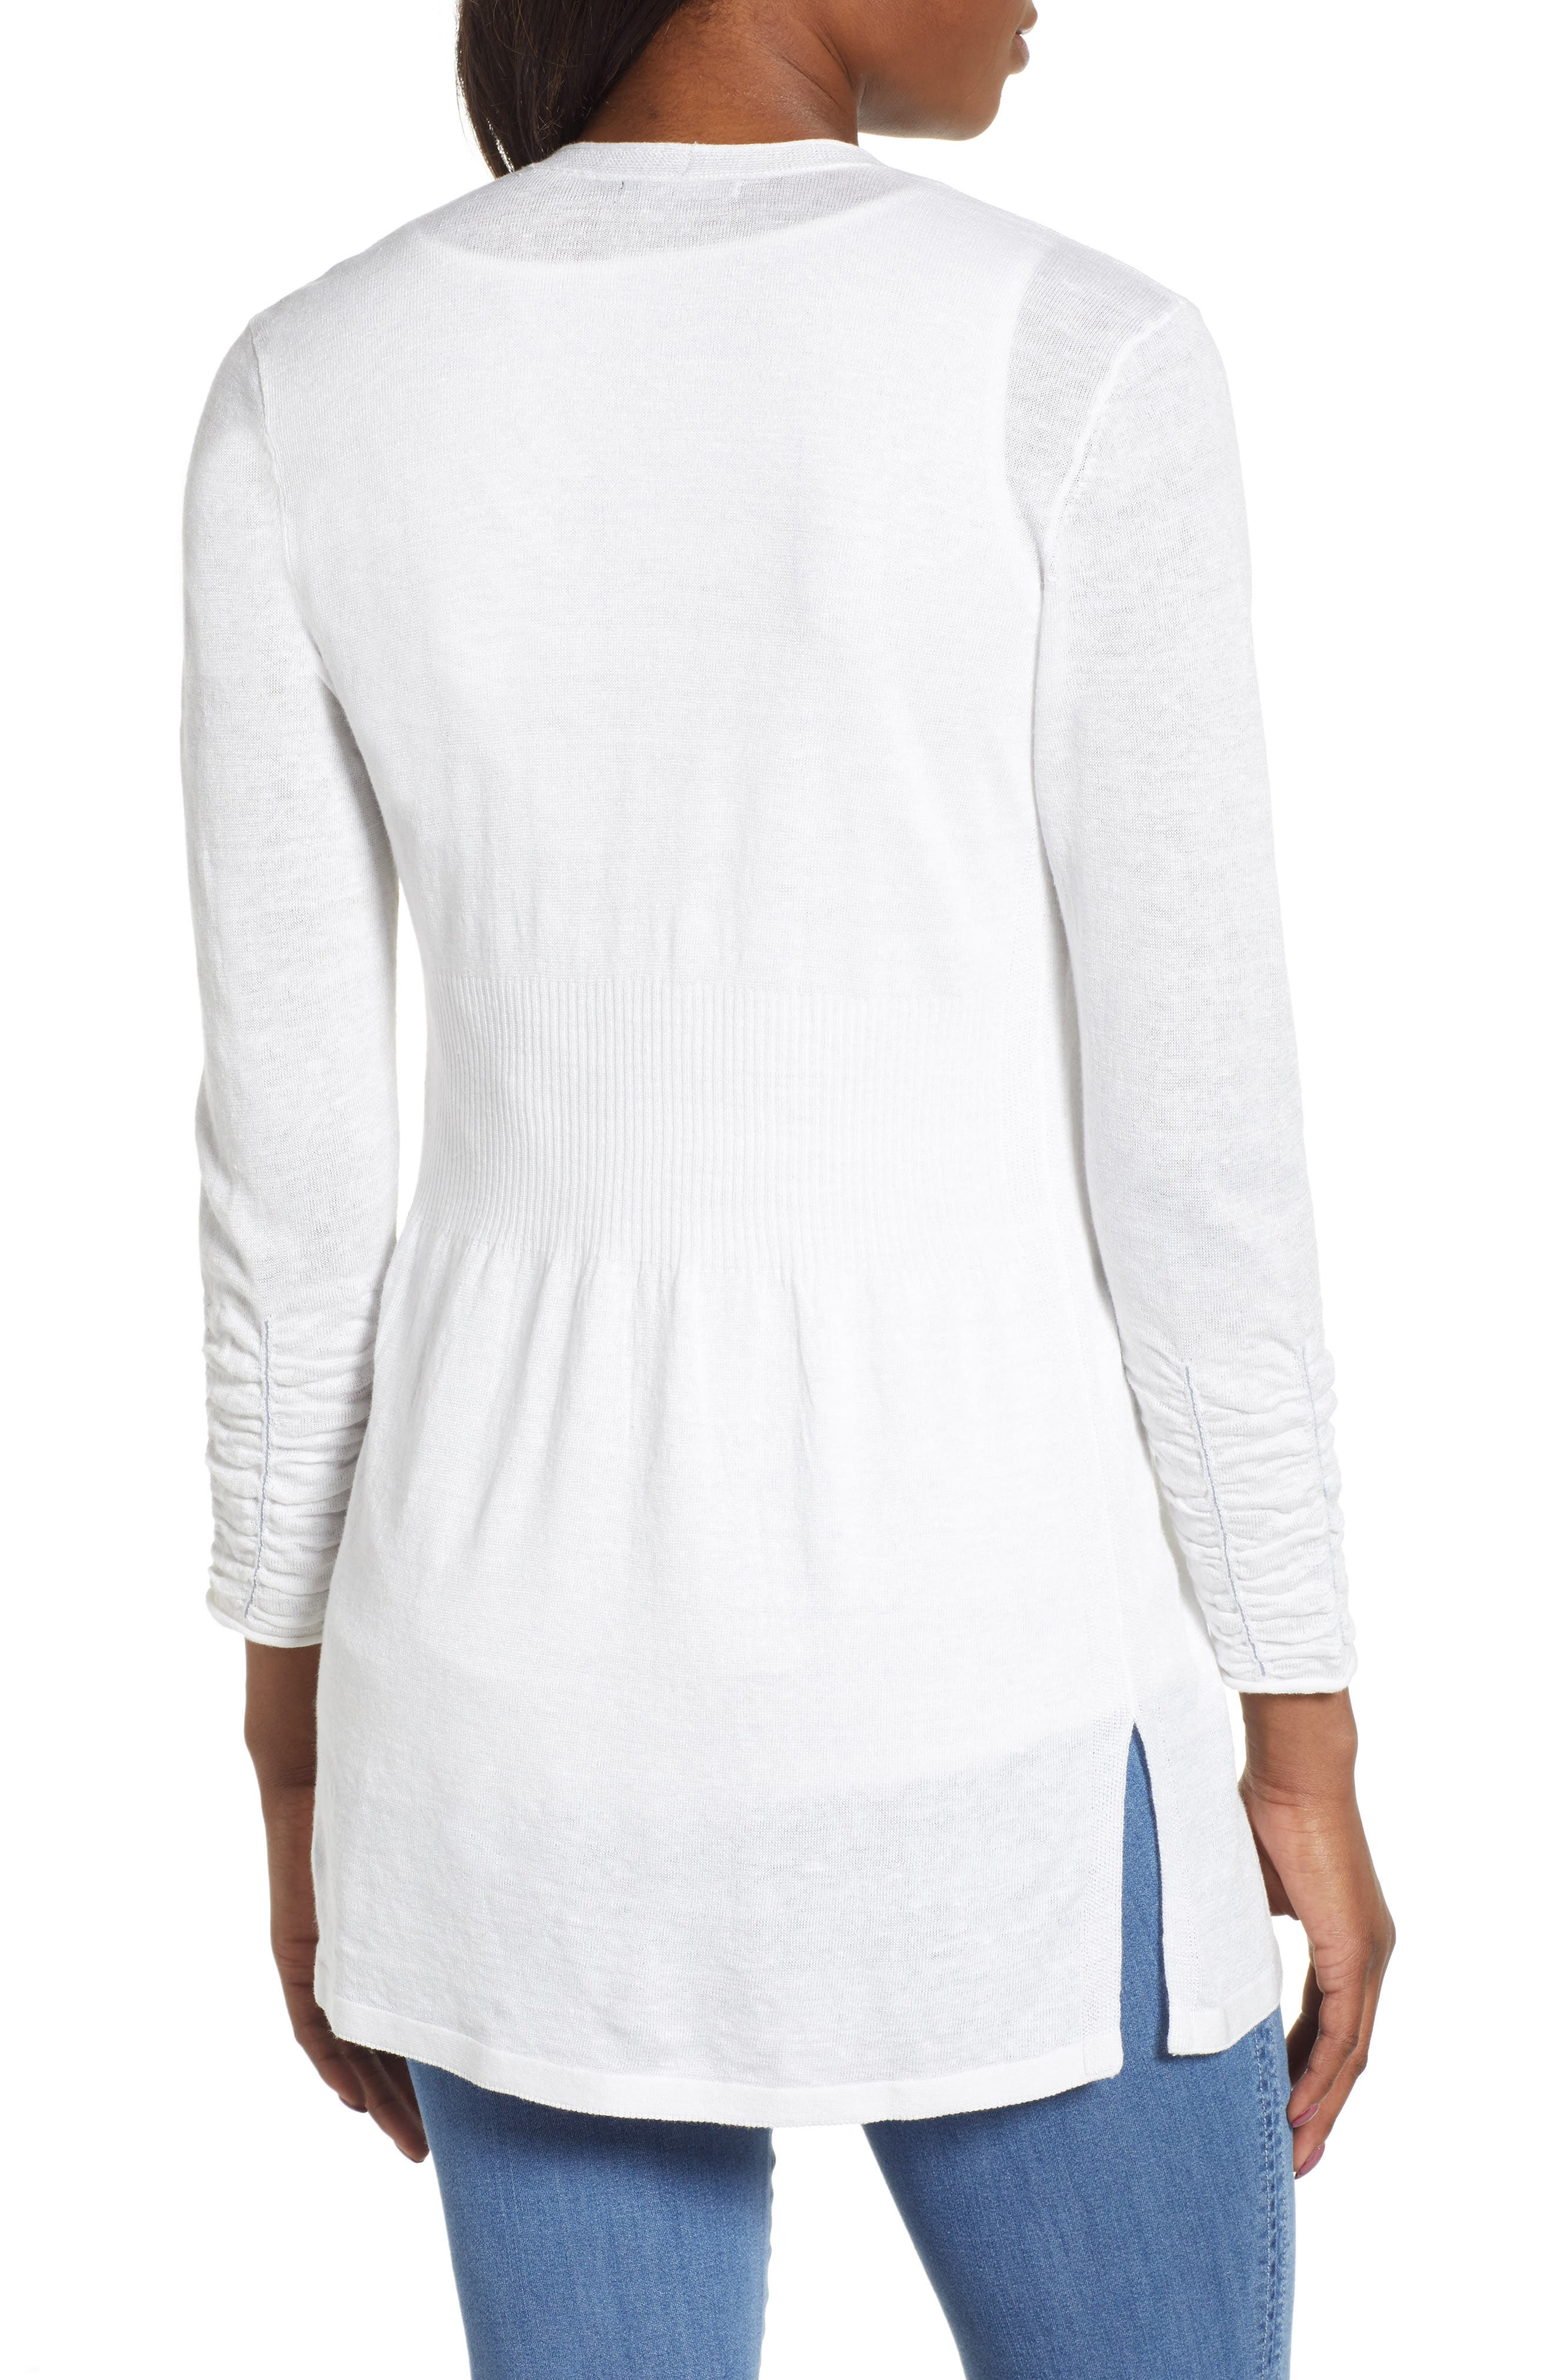 NIC+ZOE, Ruched Sleeve Cardigan, Alternate thumbnail 2, color, PAPER WHITE